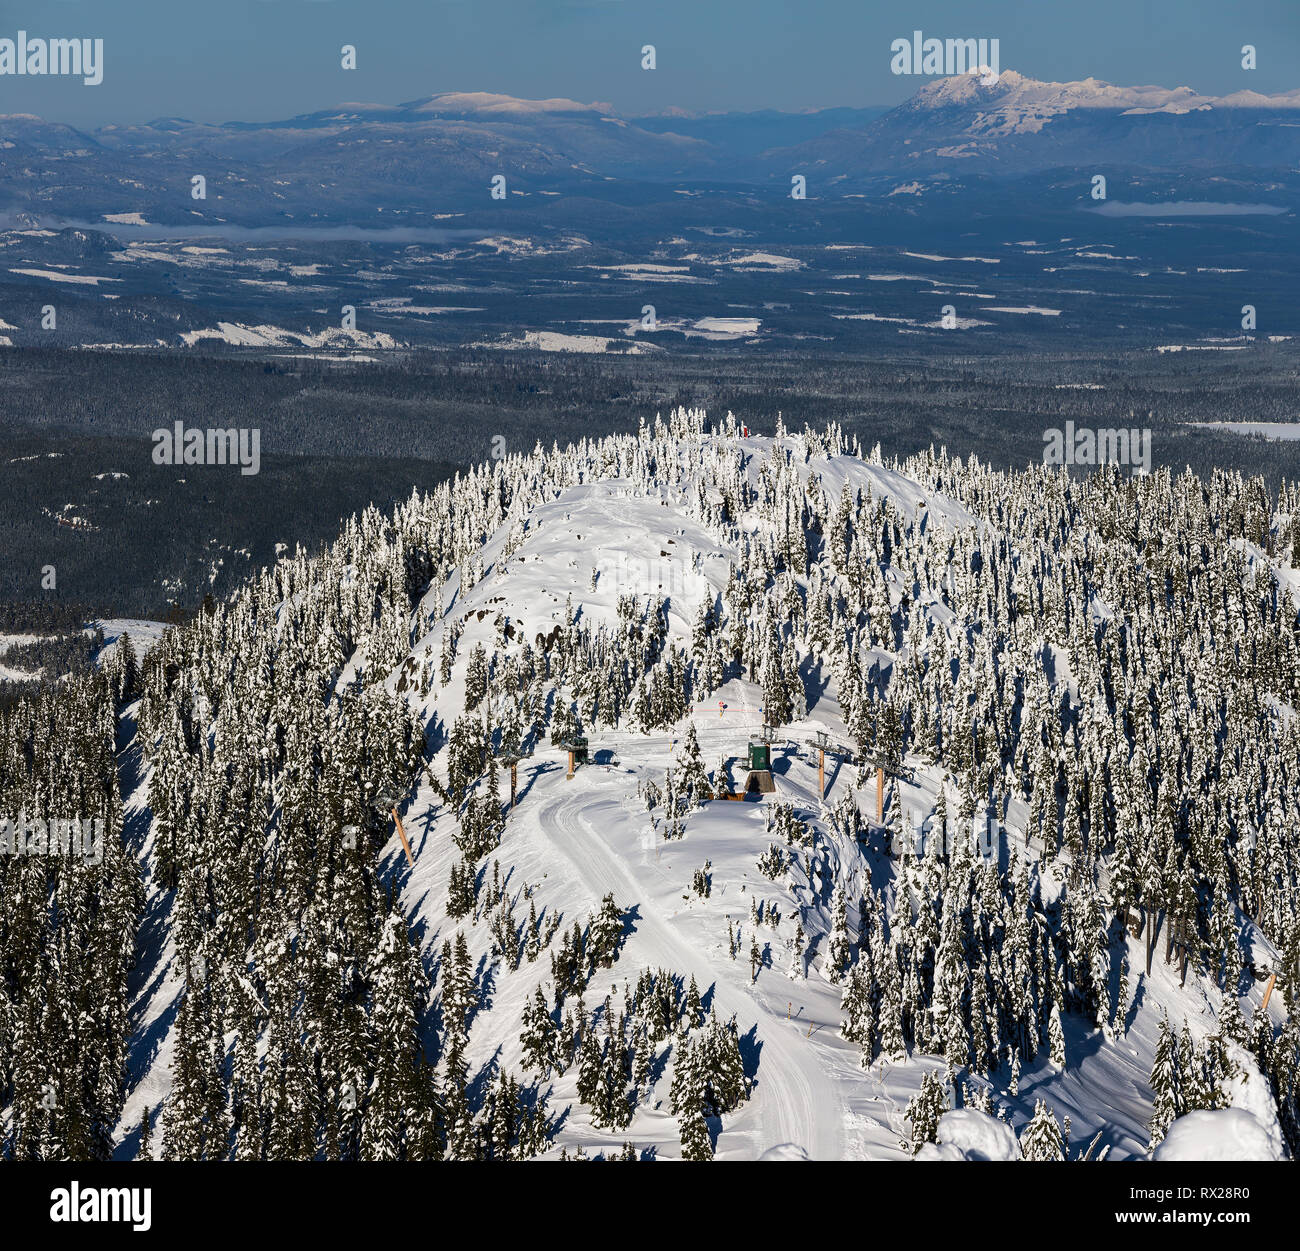 The Boomerang chairlift at Mt. Washington accesses more difficult terrain on the backside of Mt. Washington, The Comox Valley, Vancouver Island, Briti - Stock Image